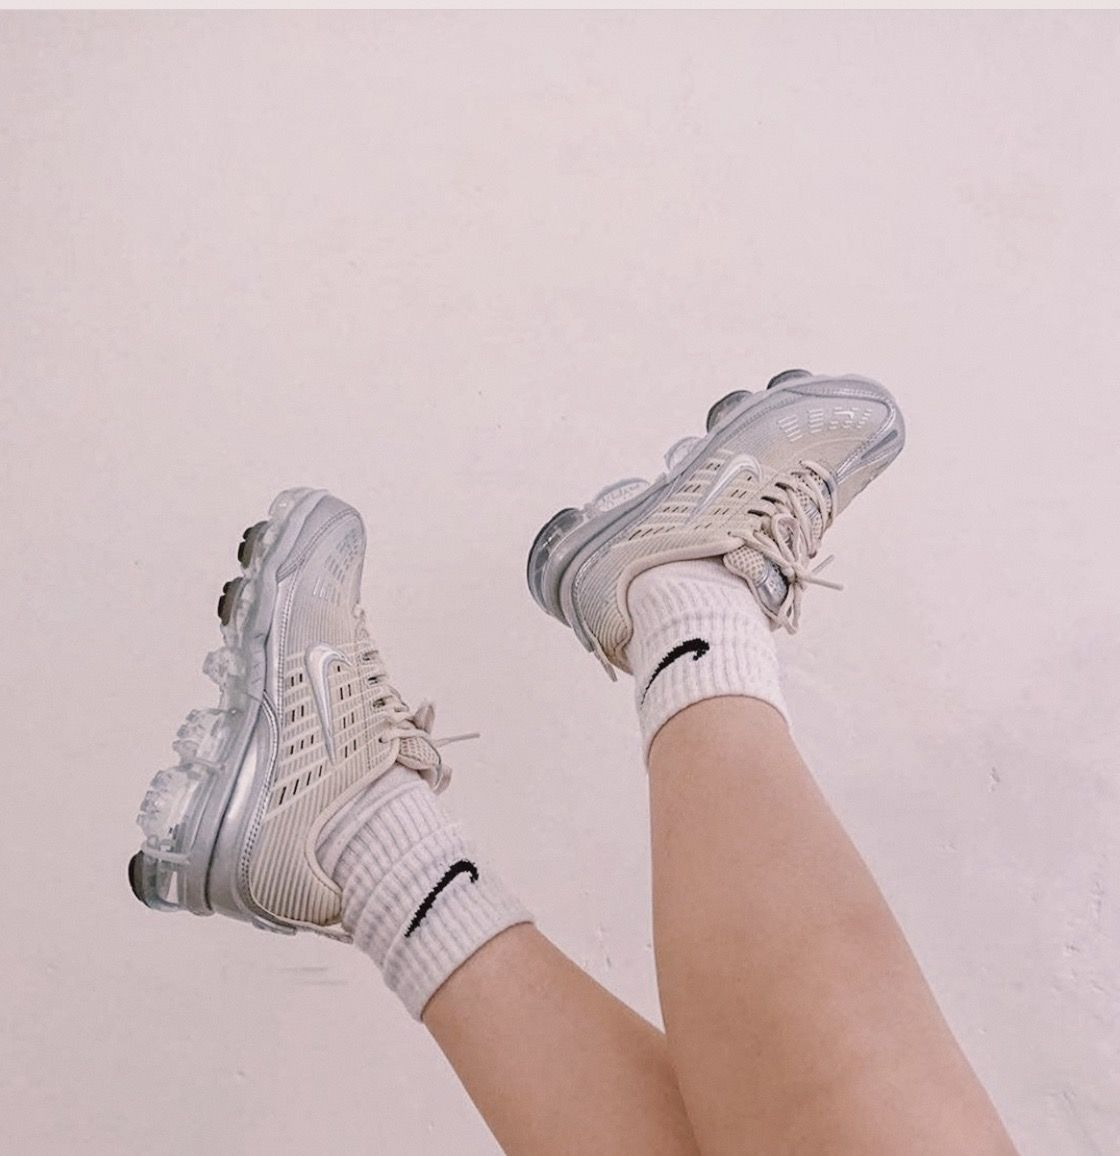 Pin By Melanie Ignacio On Sneakers Beautiful Sneakers Nike Air Vapormax Shoe Inspiration